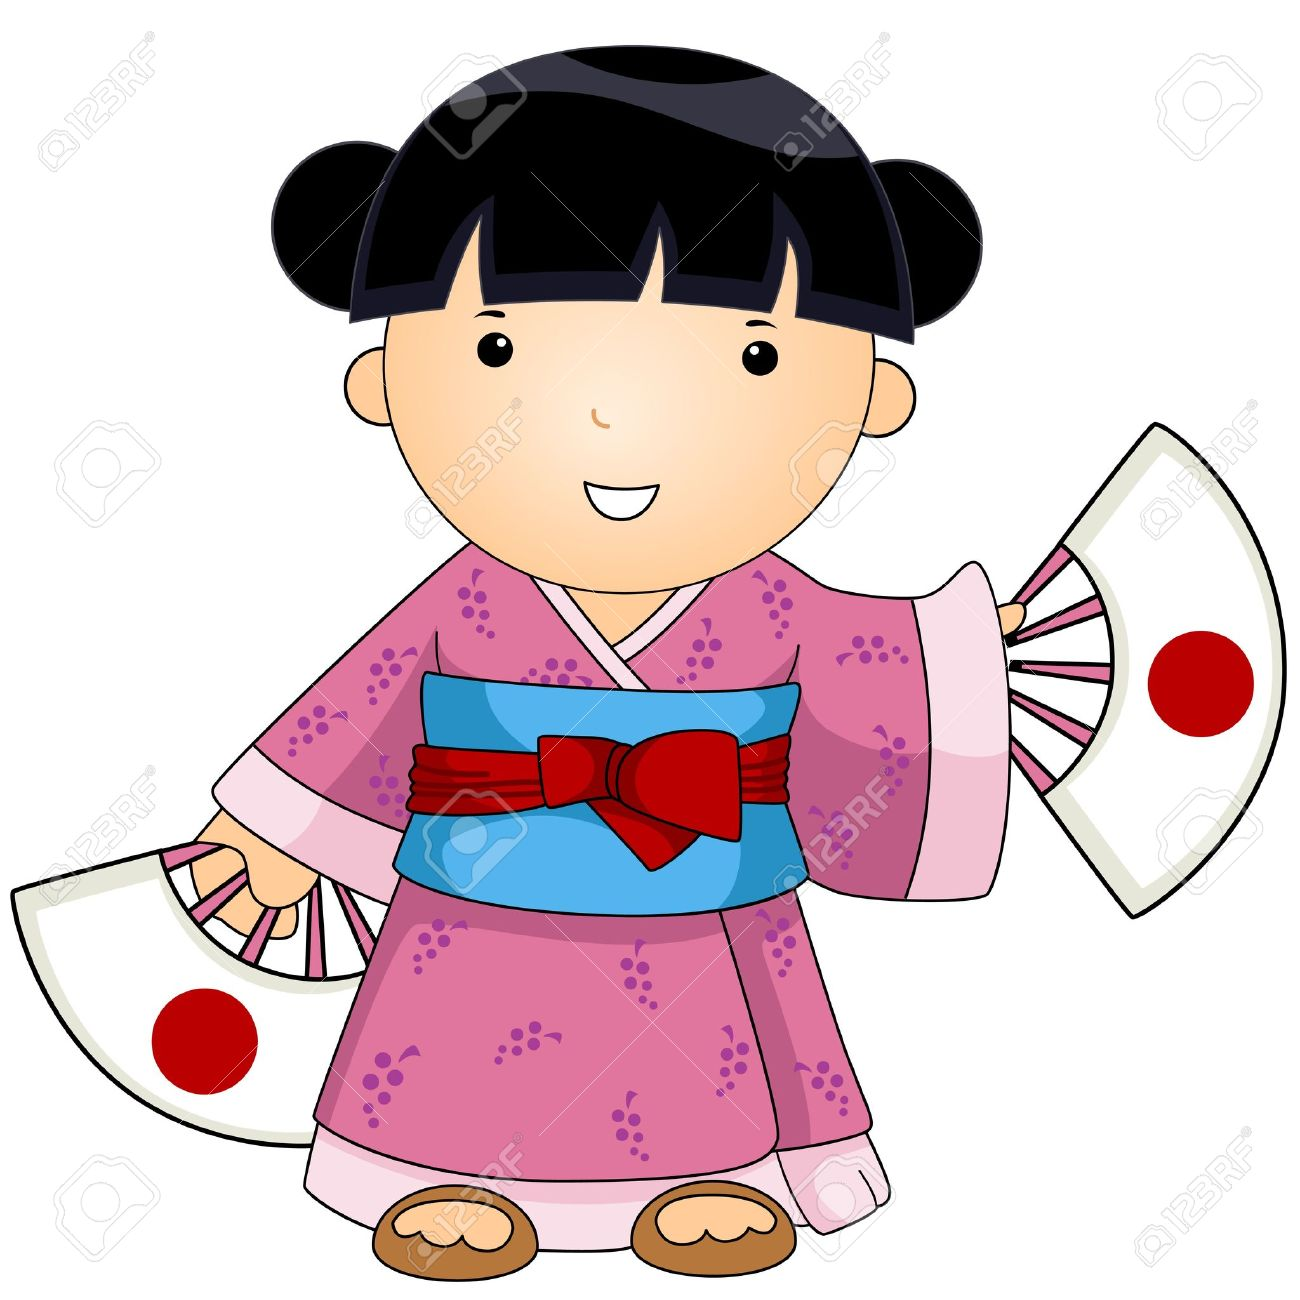 Japanese clipart. Japan dress pencil and